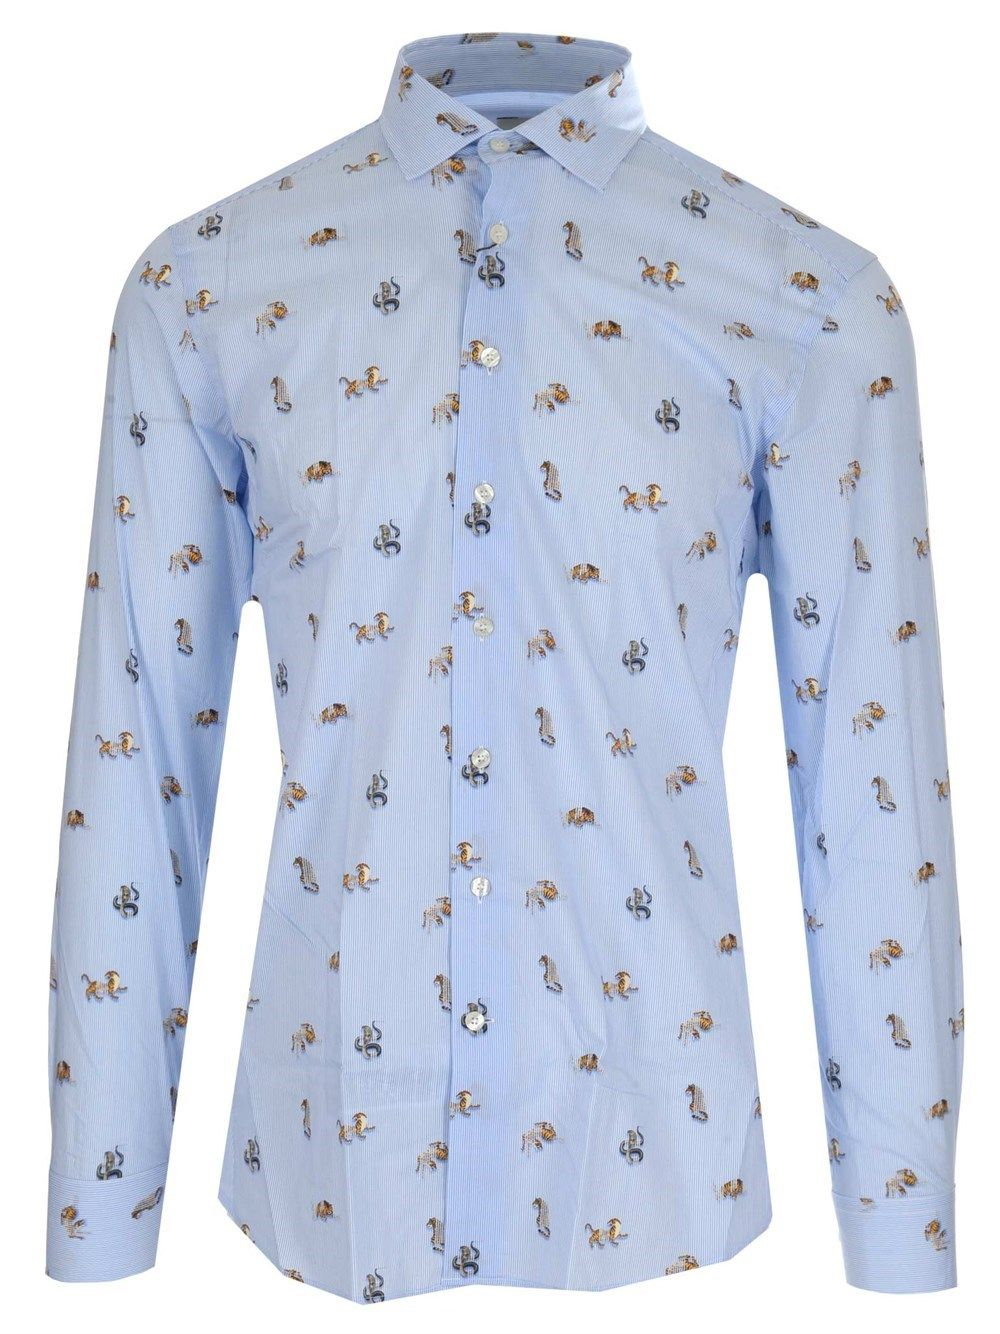 Etro Cottons ETRO MEN'S LIGHT BLUE OTHER MATERIALS SHIRT